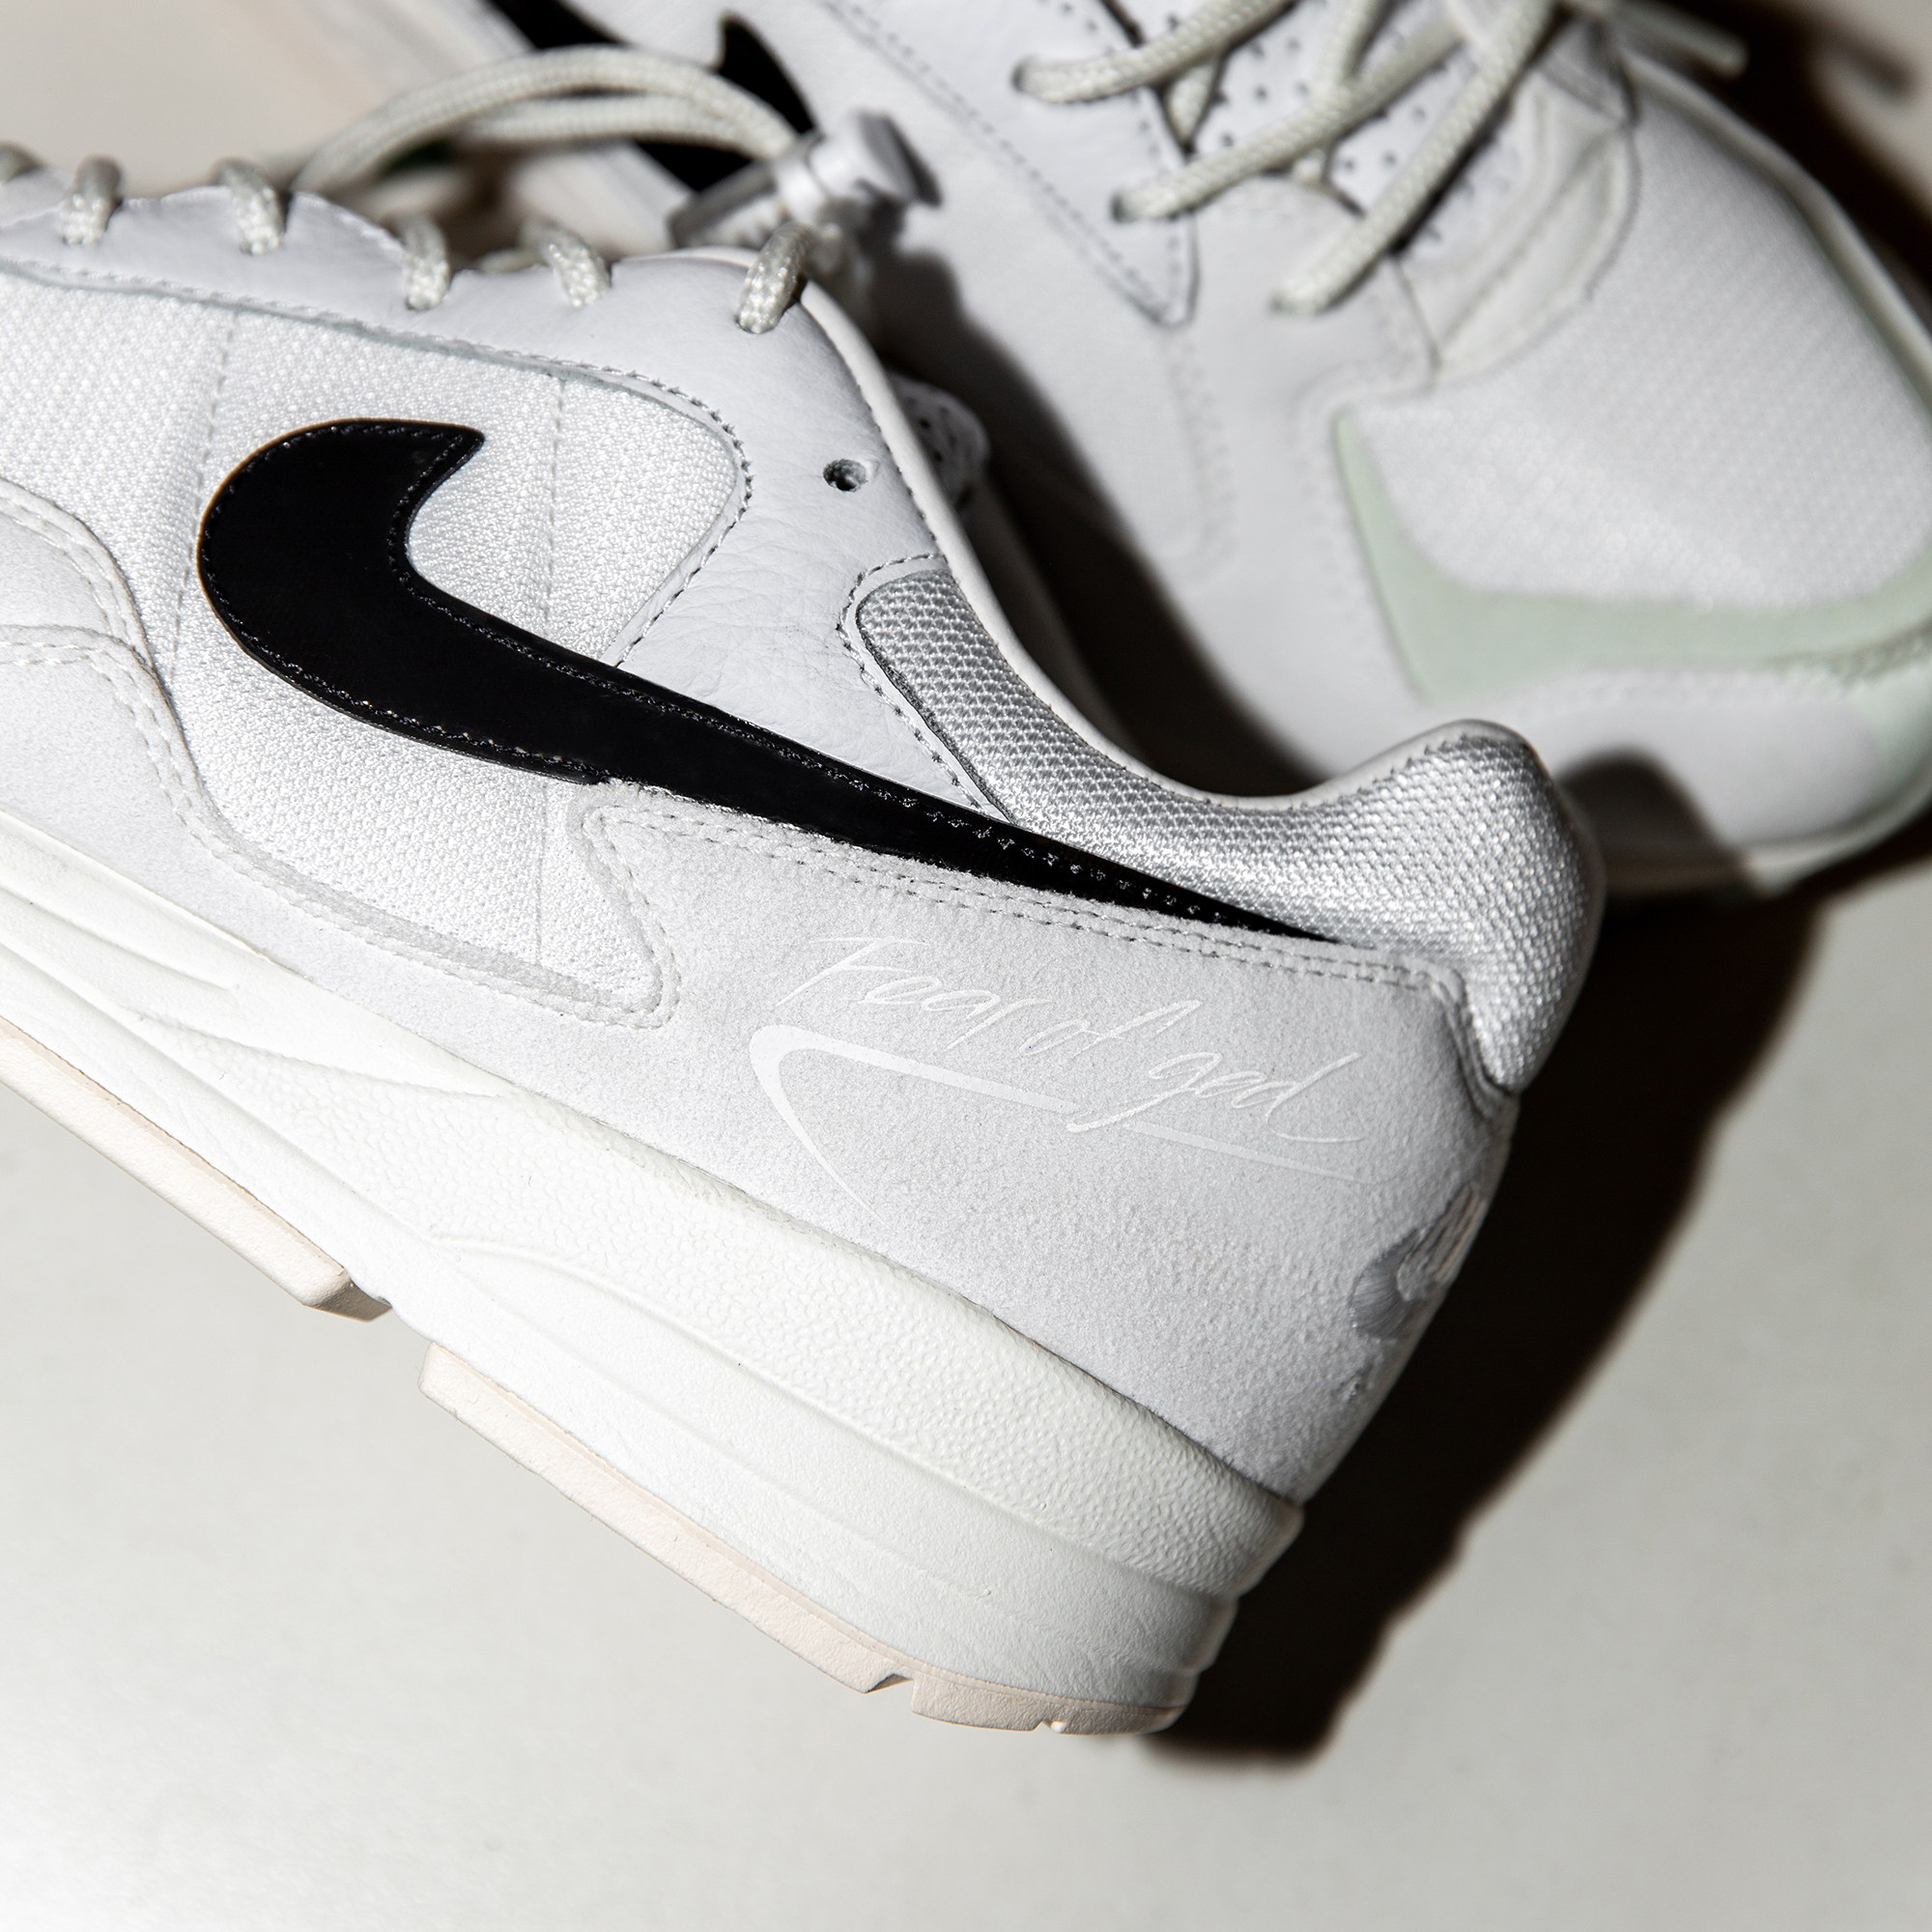 Nike x Fear of God Air Skylon 2